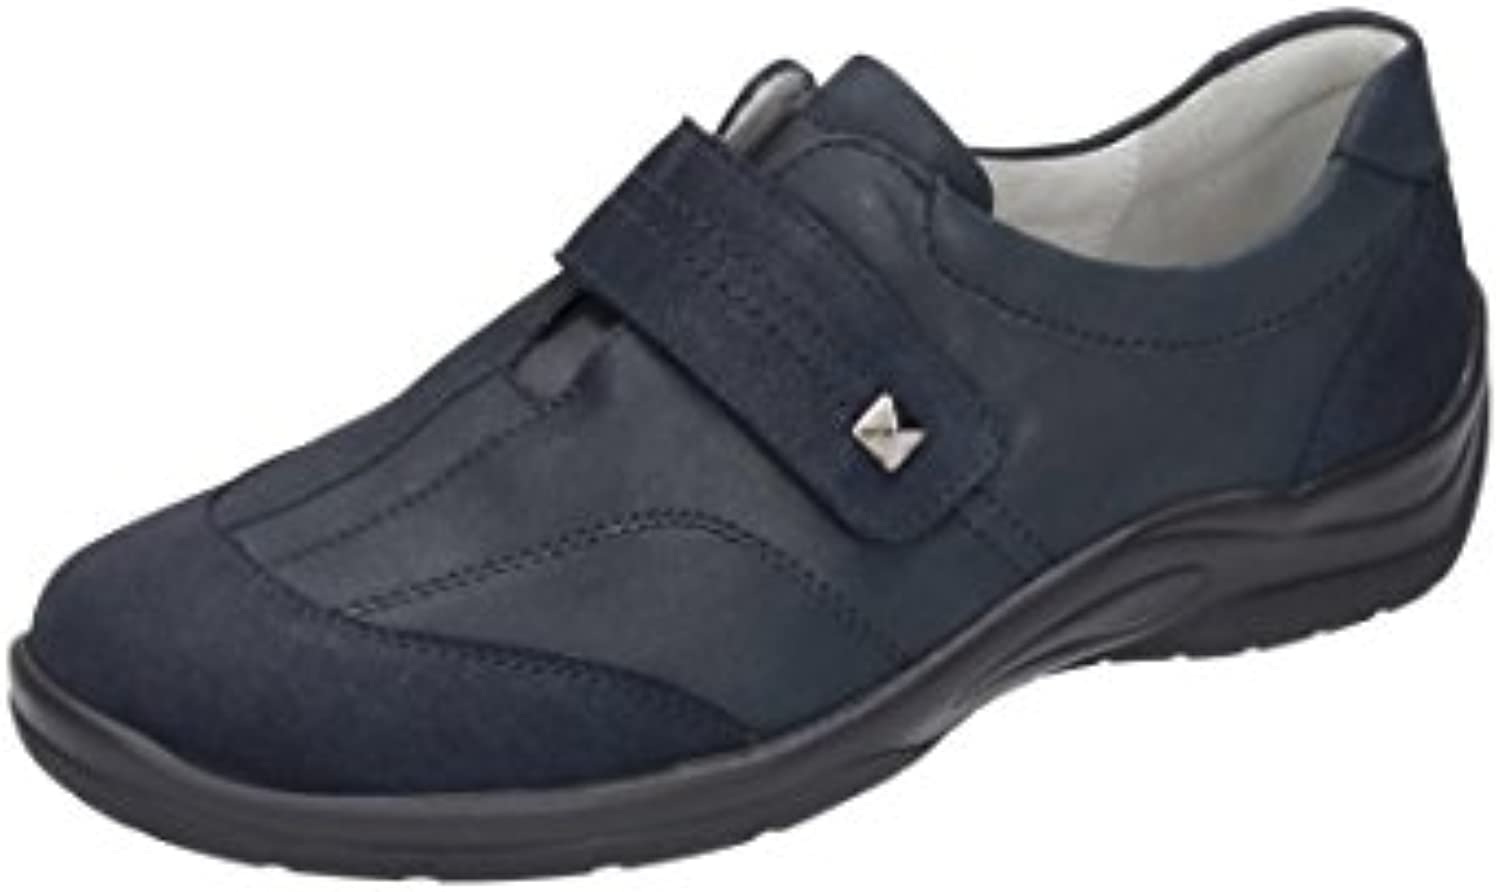 Waldlufer Damen Ballerinas, Pumps Blau, 941799-5